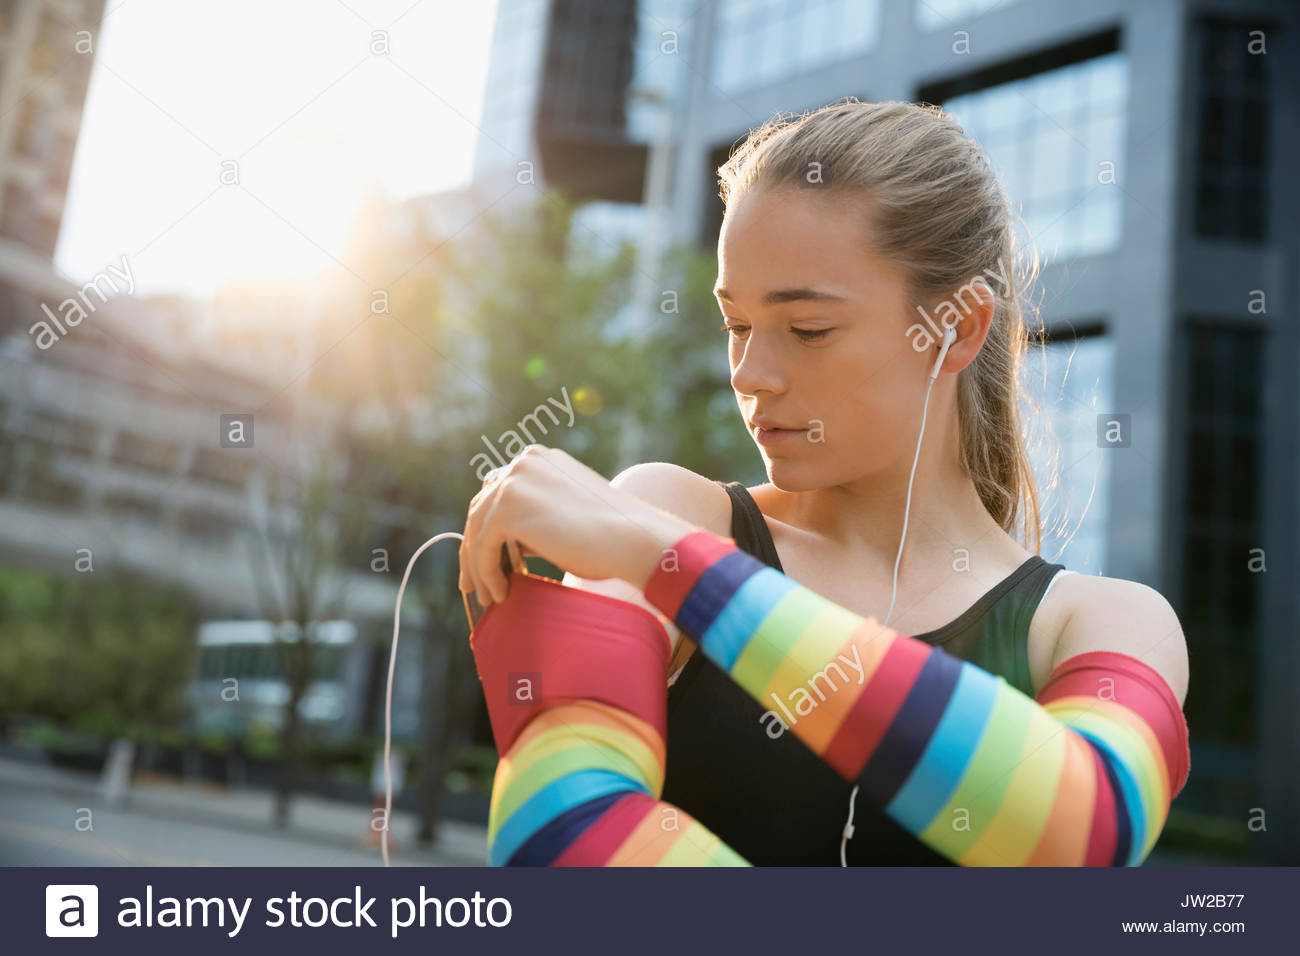 Teenage girl runner wearing rainbow compression arm sleeves, listening to music with mp3 player and earbud headphones - Stock Image